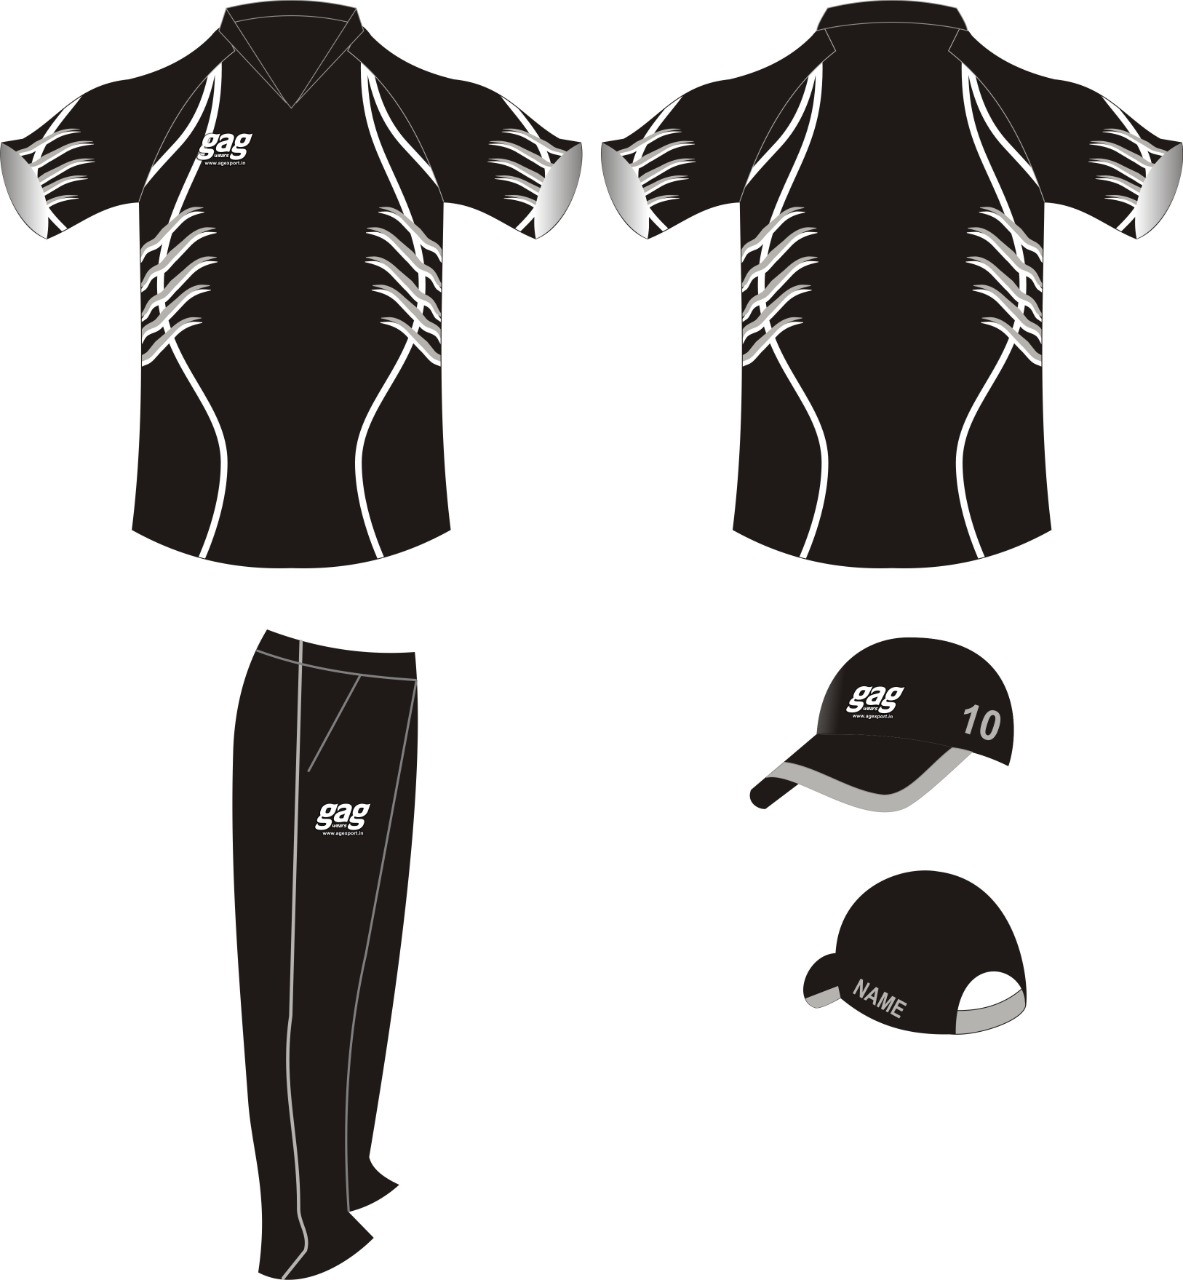 Custom Cricket Jerseys Manufacturers in Jalandhar in Austria